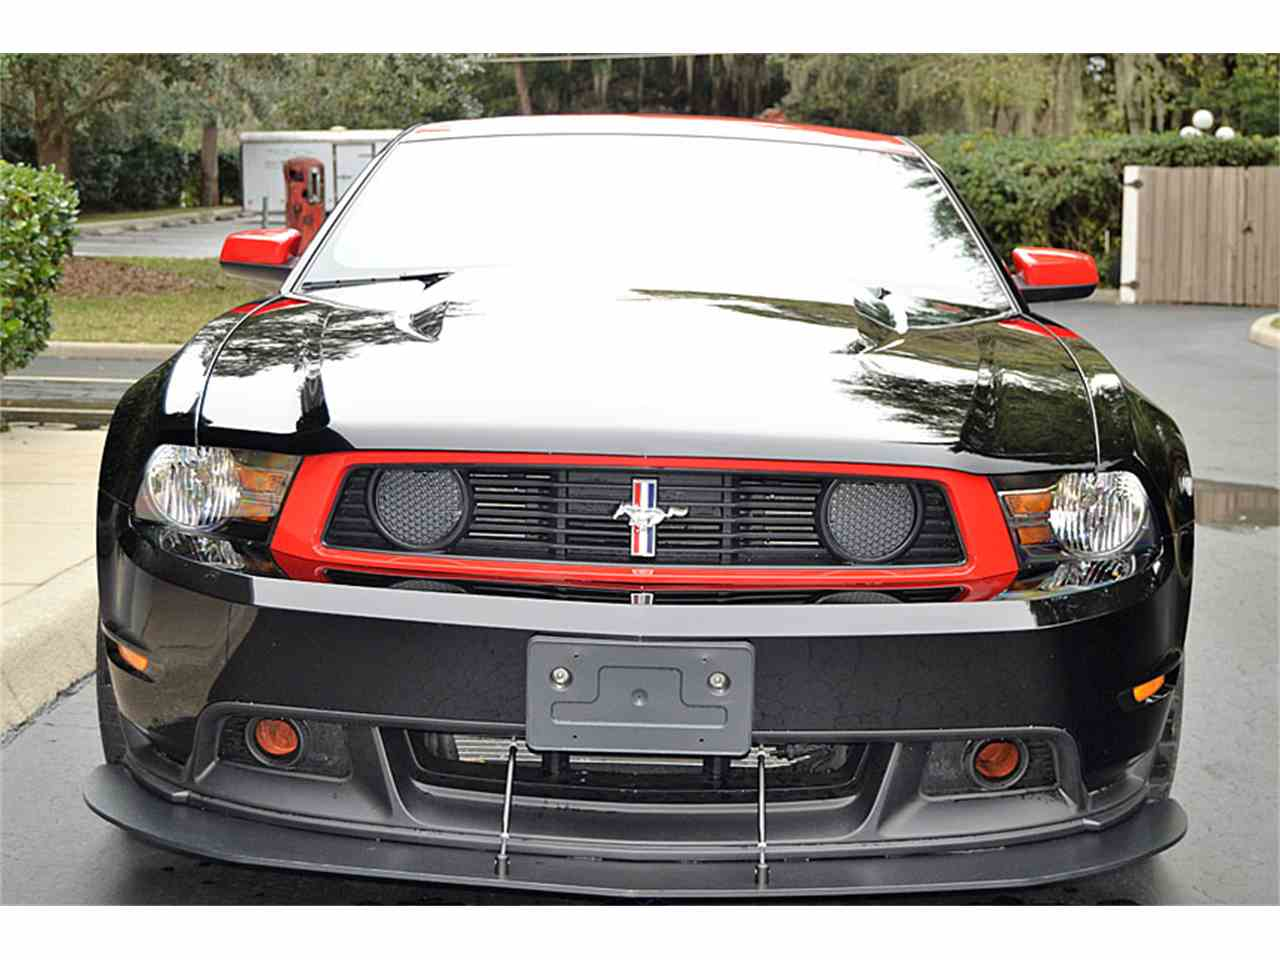 Large Picture of '12 Ford Mustang located in Florida - $56,500.00 - MA34